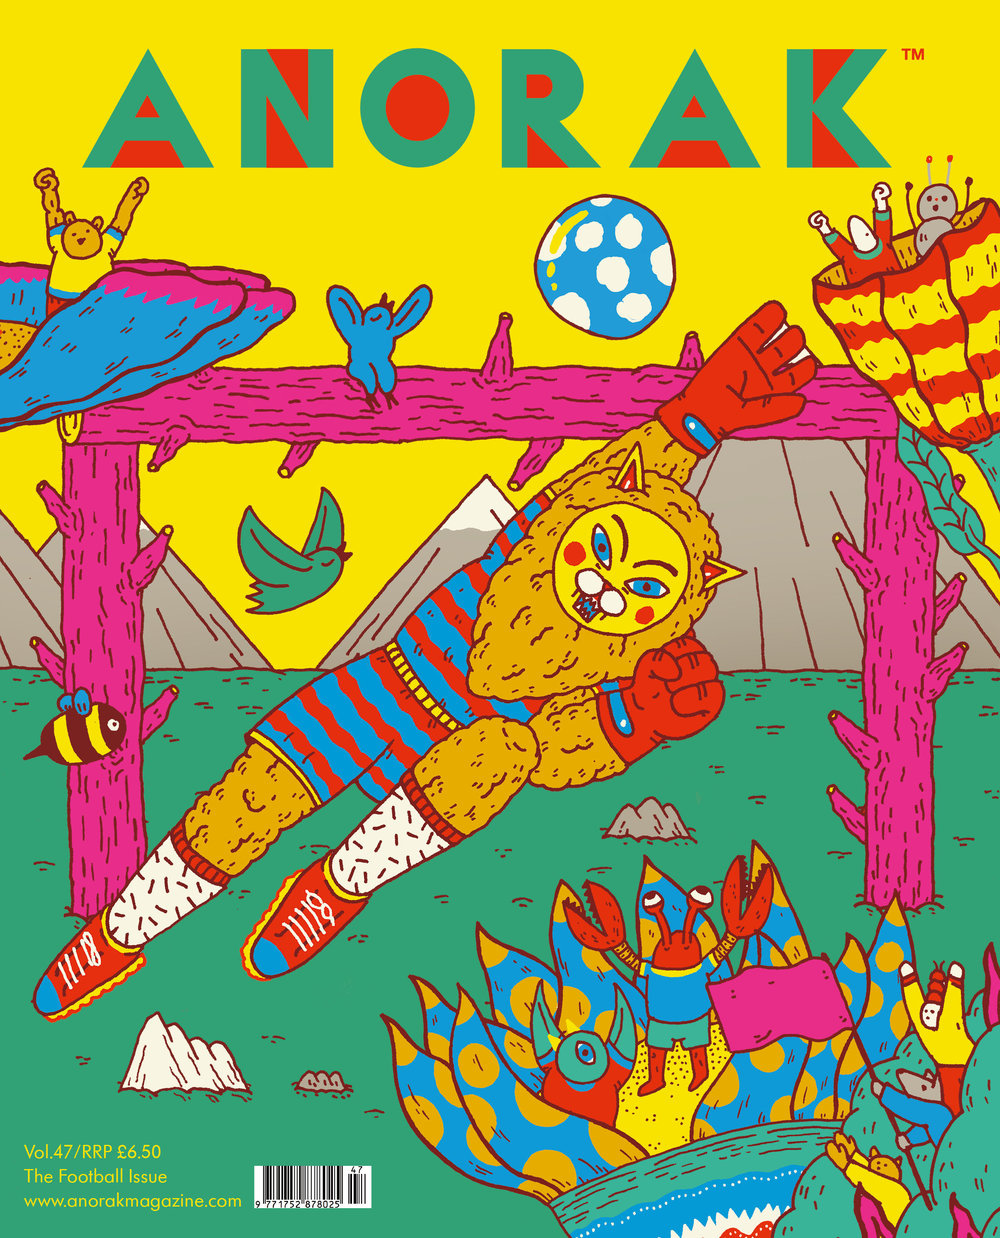 Anorak Vol 47 Cover.jpg